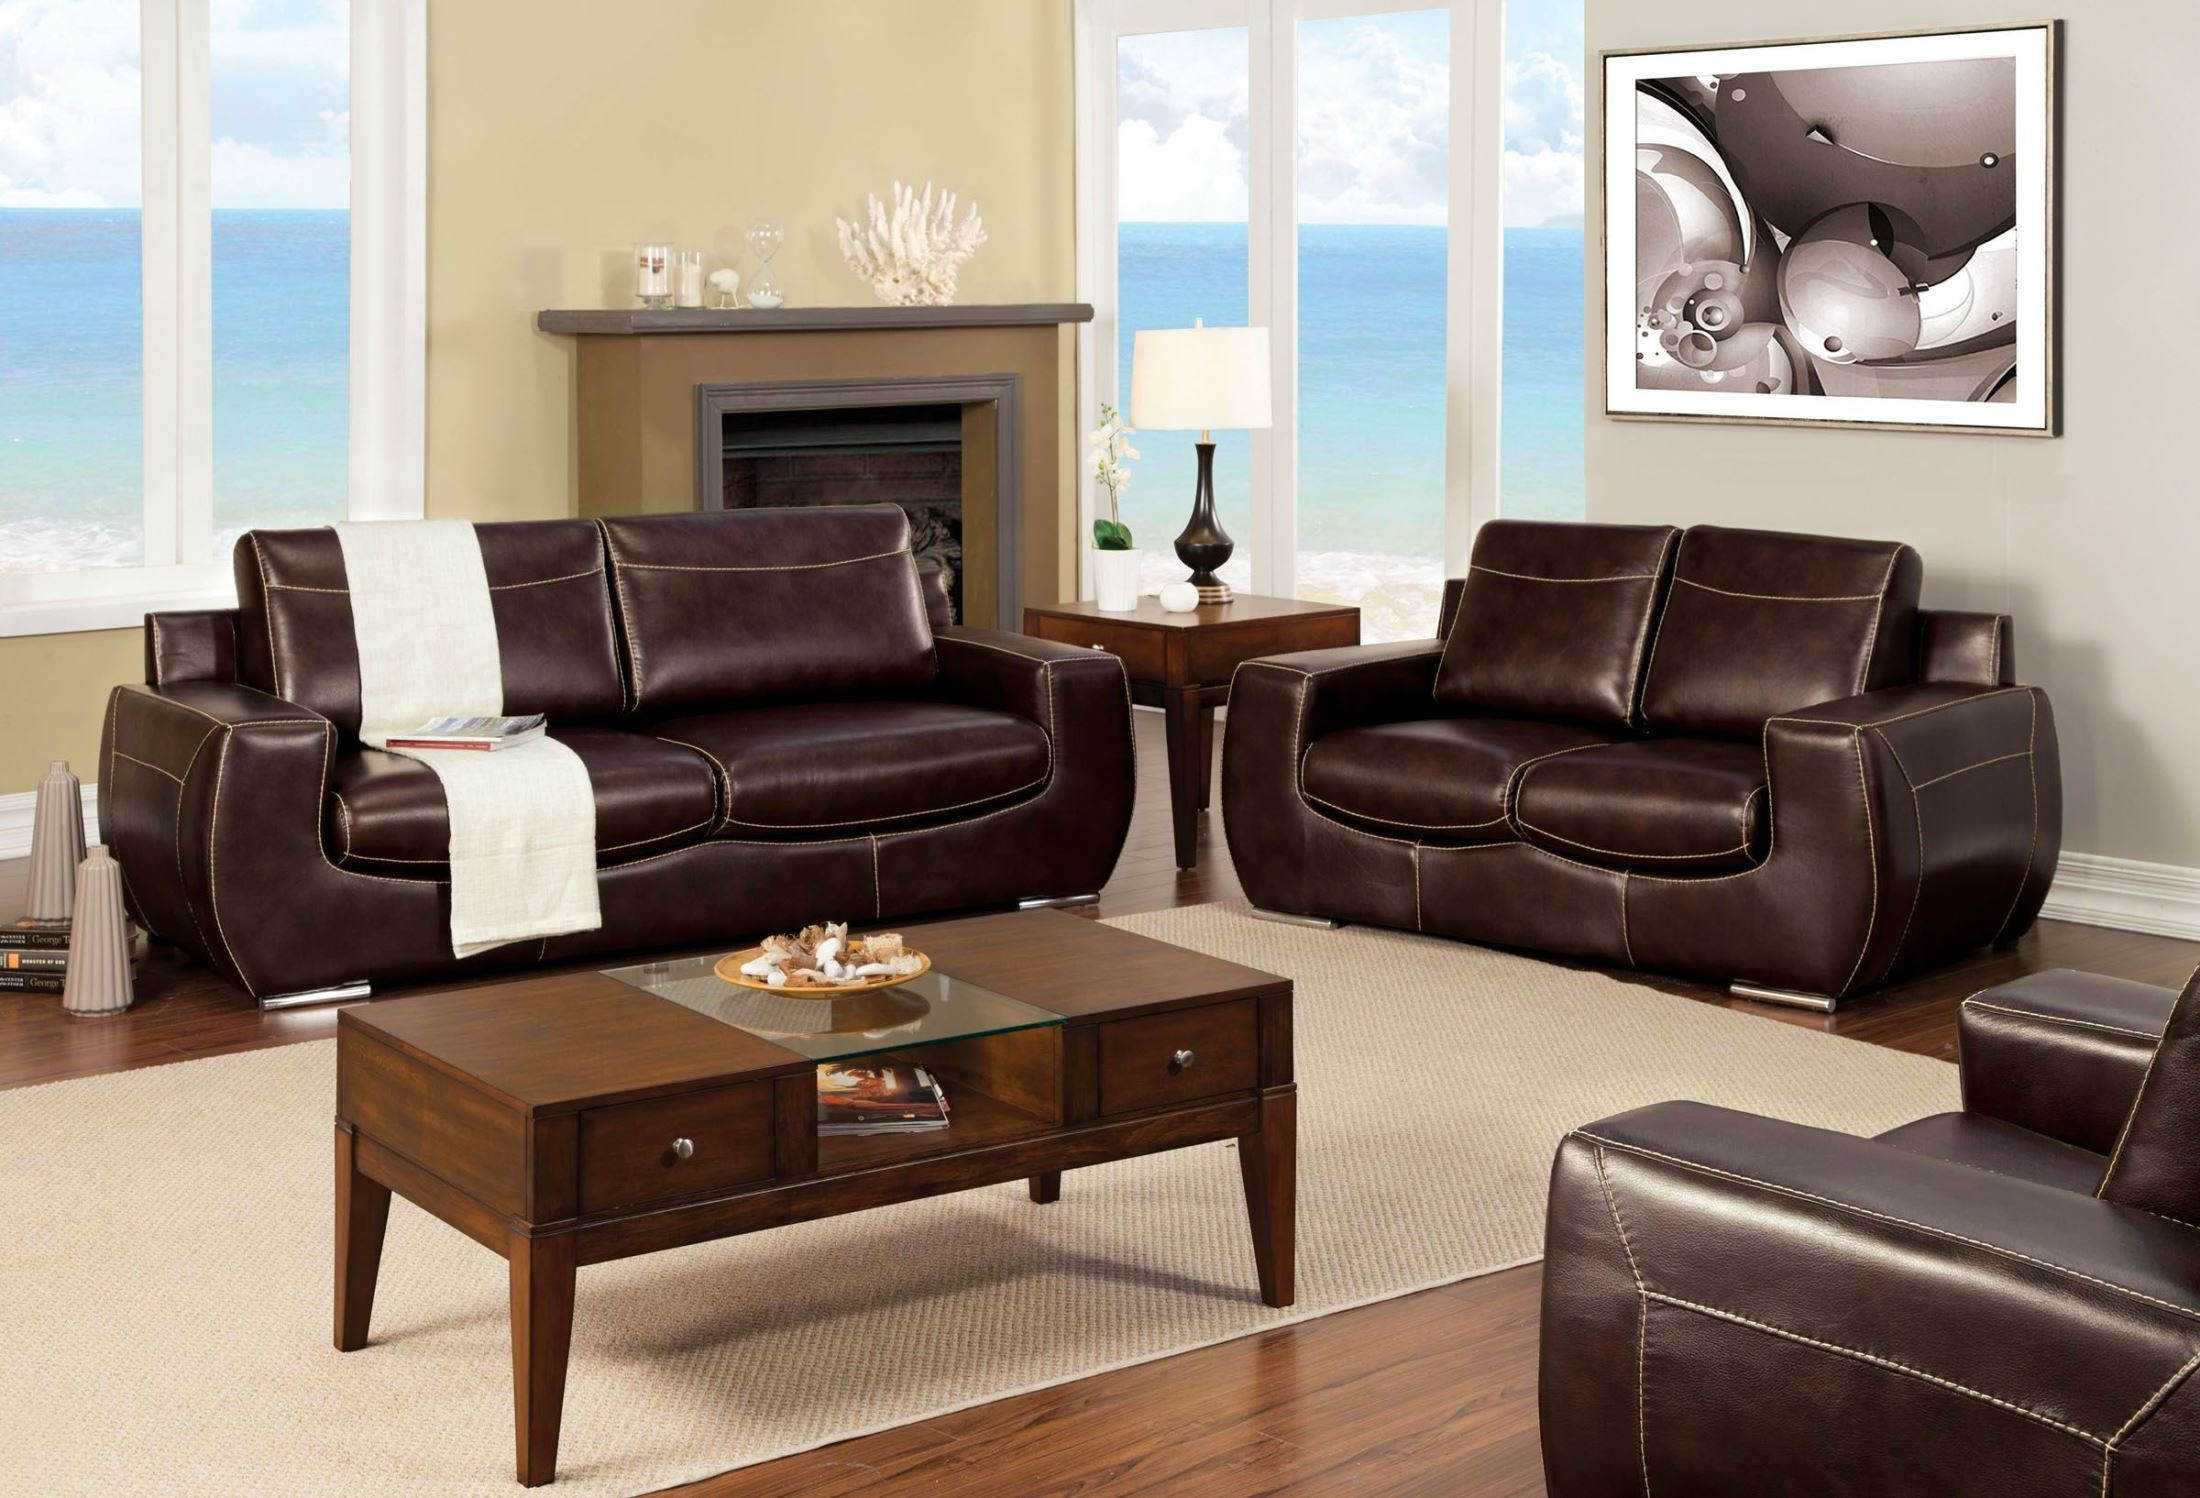 Tekir espresso living room set from furniture of america for Sm living room furnitures